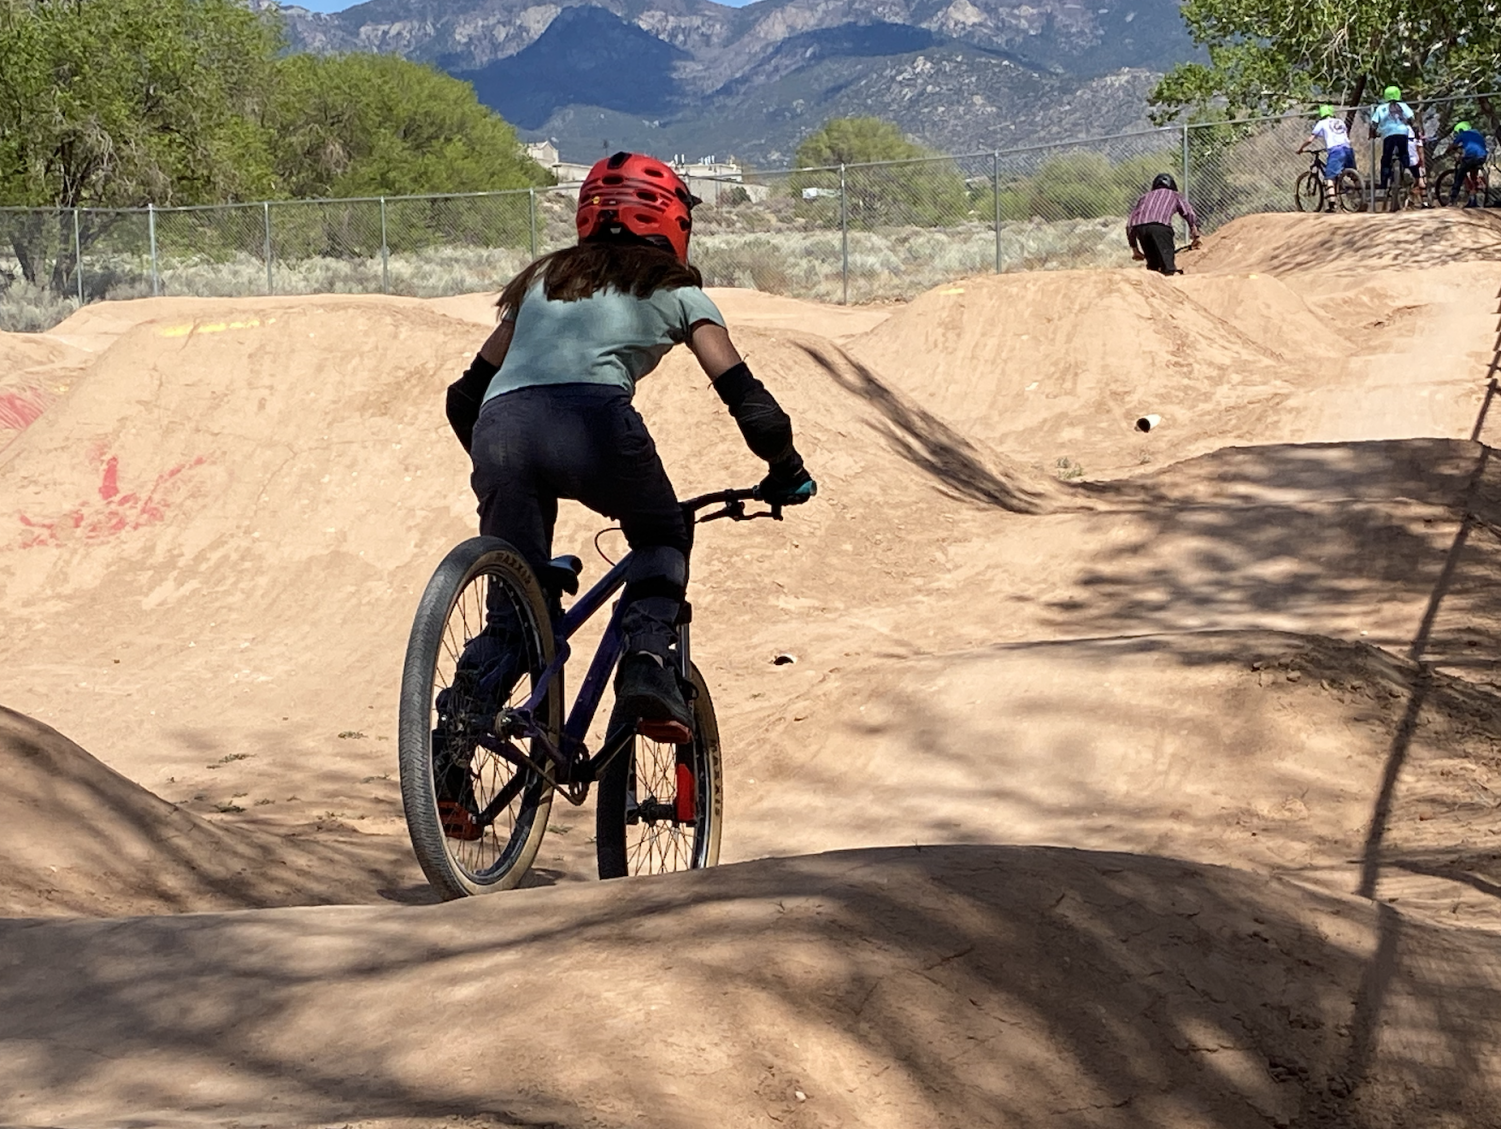 The+Bike+Park+brings+adventure+and+lifelong+learning+to+AA